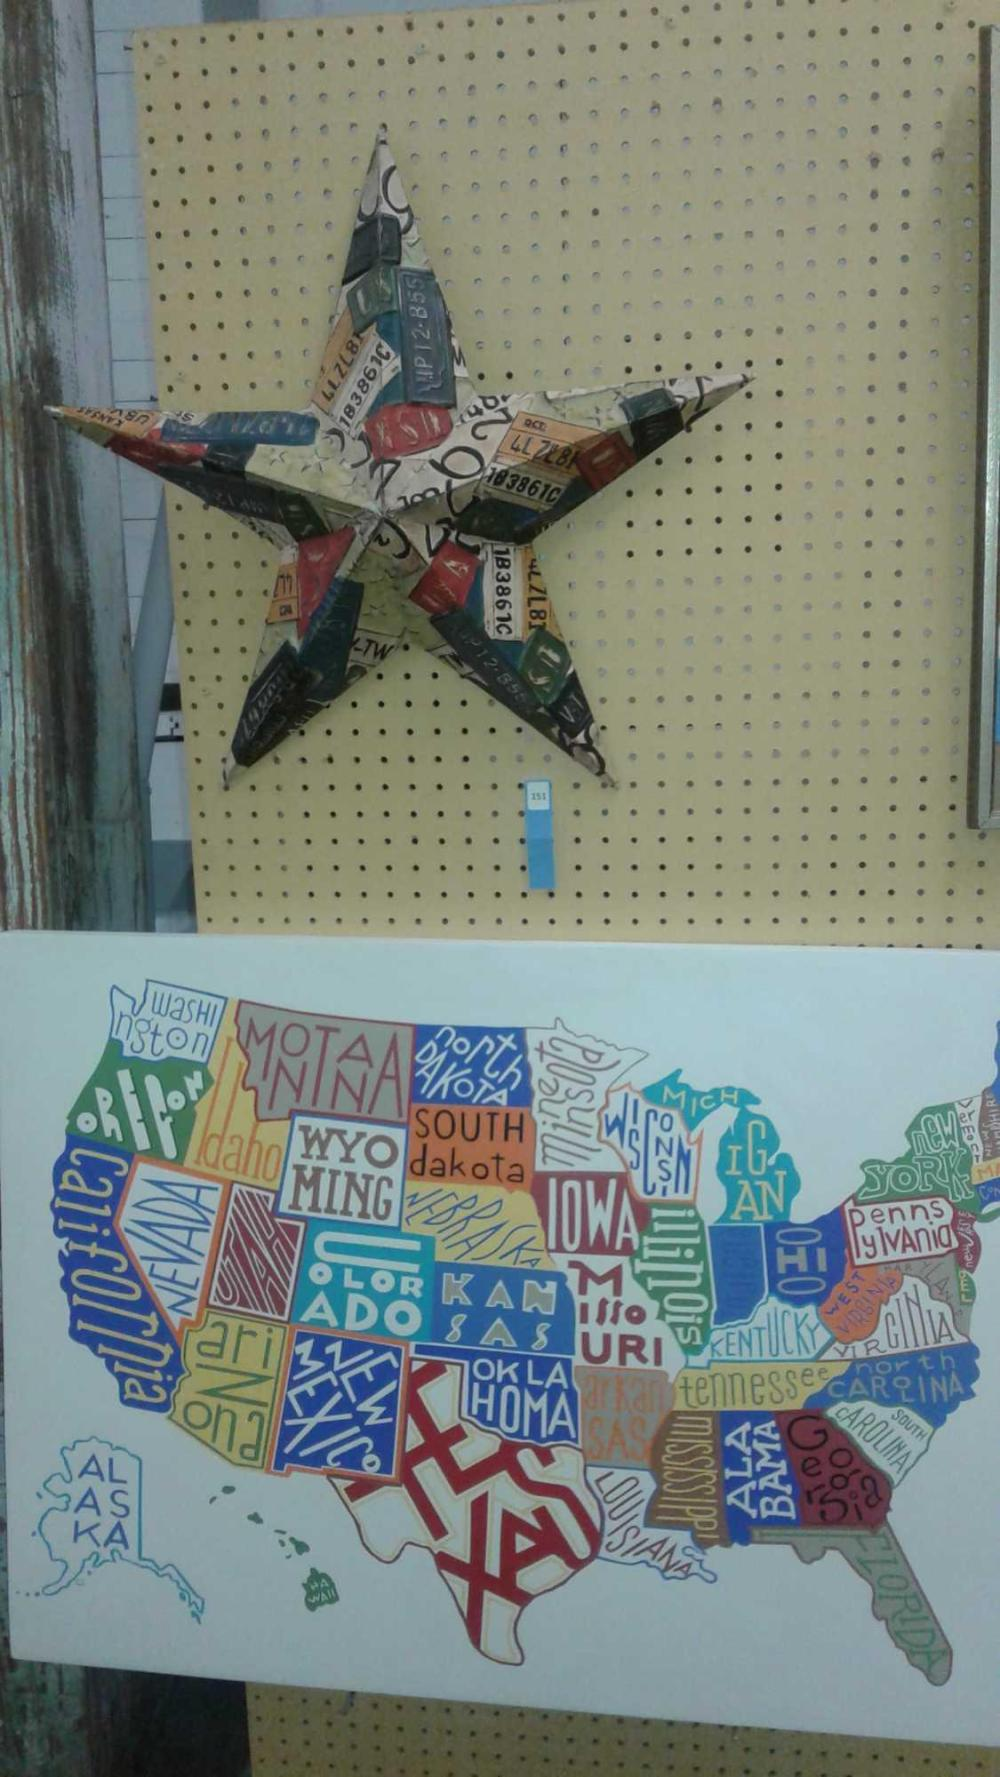 LASER PRINT OUTLINE  OF THE U.S. W/ STATE NAMES & DECORATOR EMBOSSED TIN STAR W/ AUTO LICENSE PLATE MOTIF - 2 ITEMS